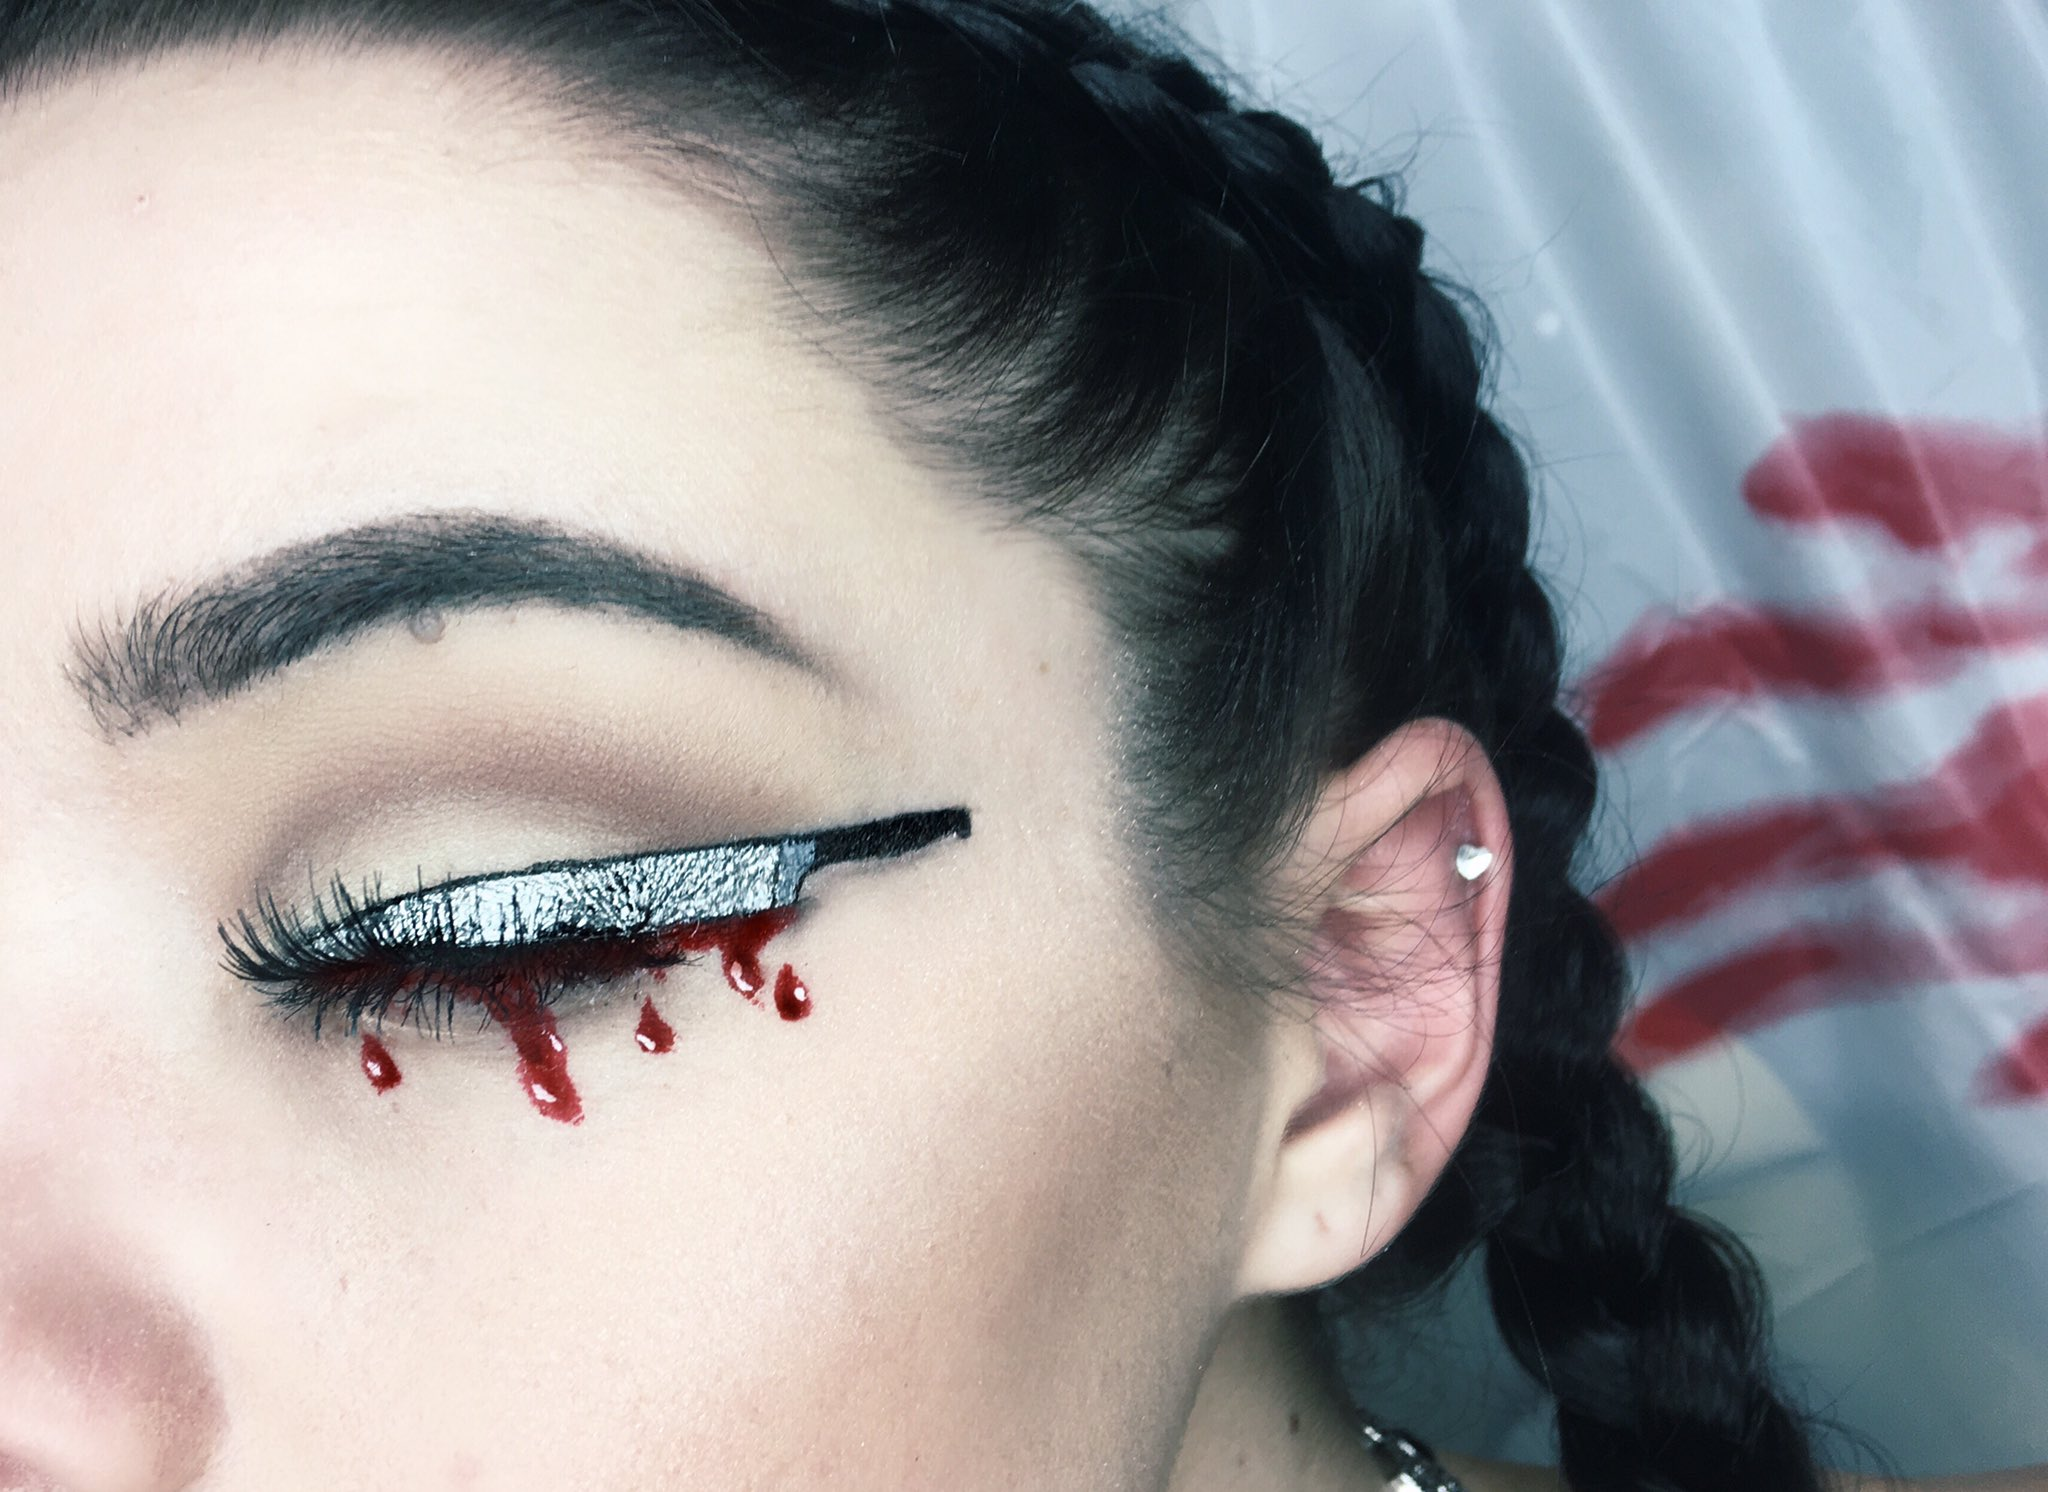 20 inspiration of Goth Girl Makeup you can do in 2020 1